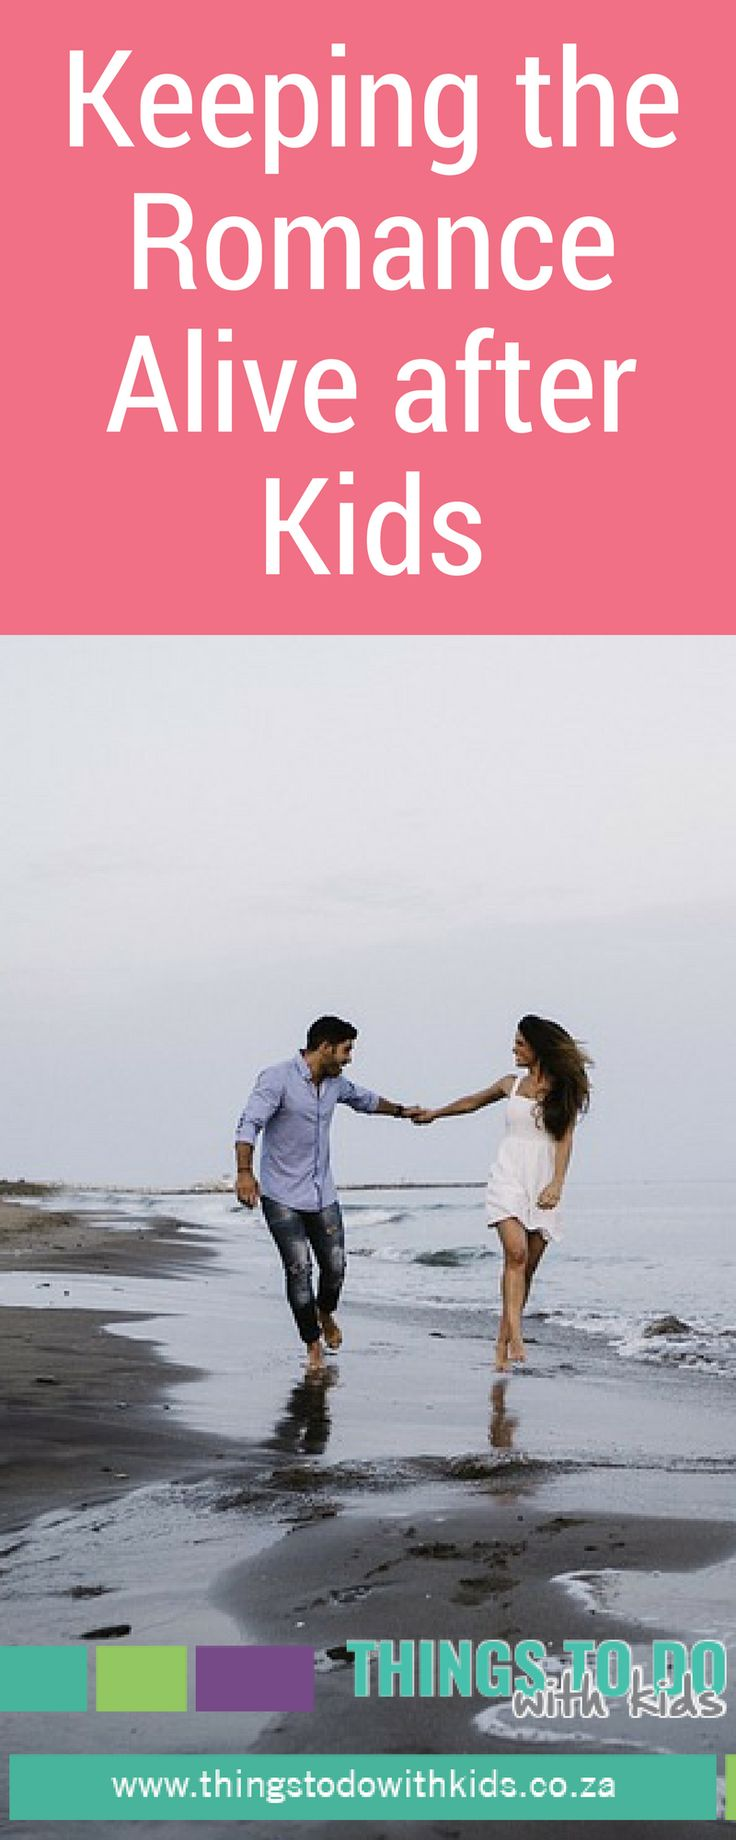 How to get the spark back in your marriage | Relationship advice | Marriage advice | Keeping the romance alive in your marriage | Married life after kids | How to stay a couple after kids | Things to do with Kids | Parenting | Romance | Marriage